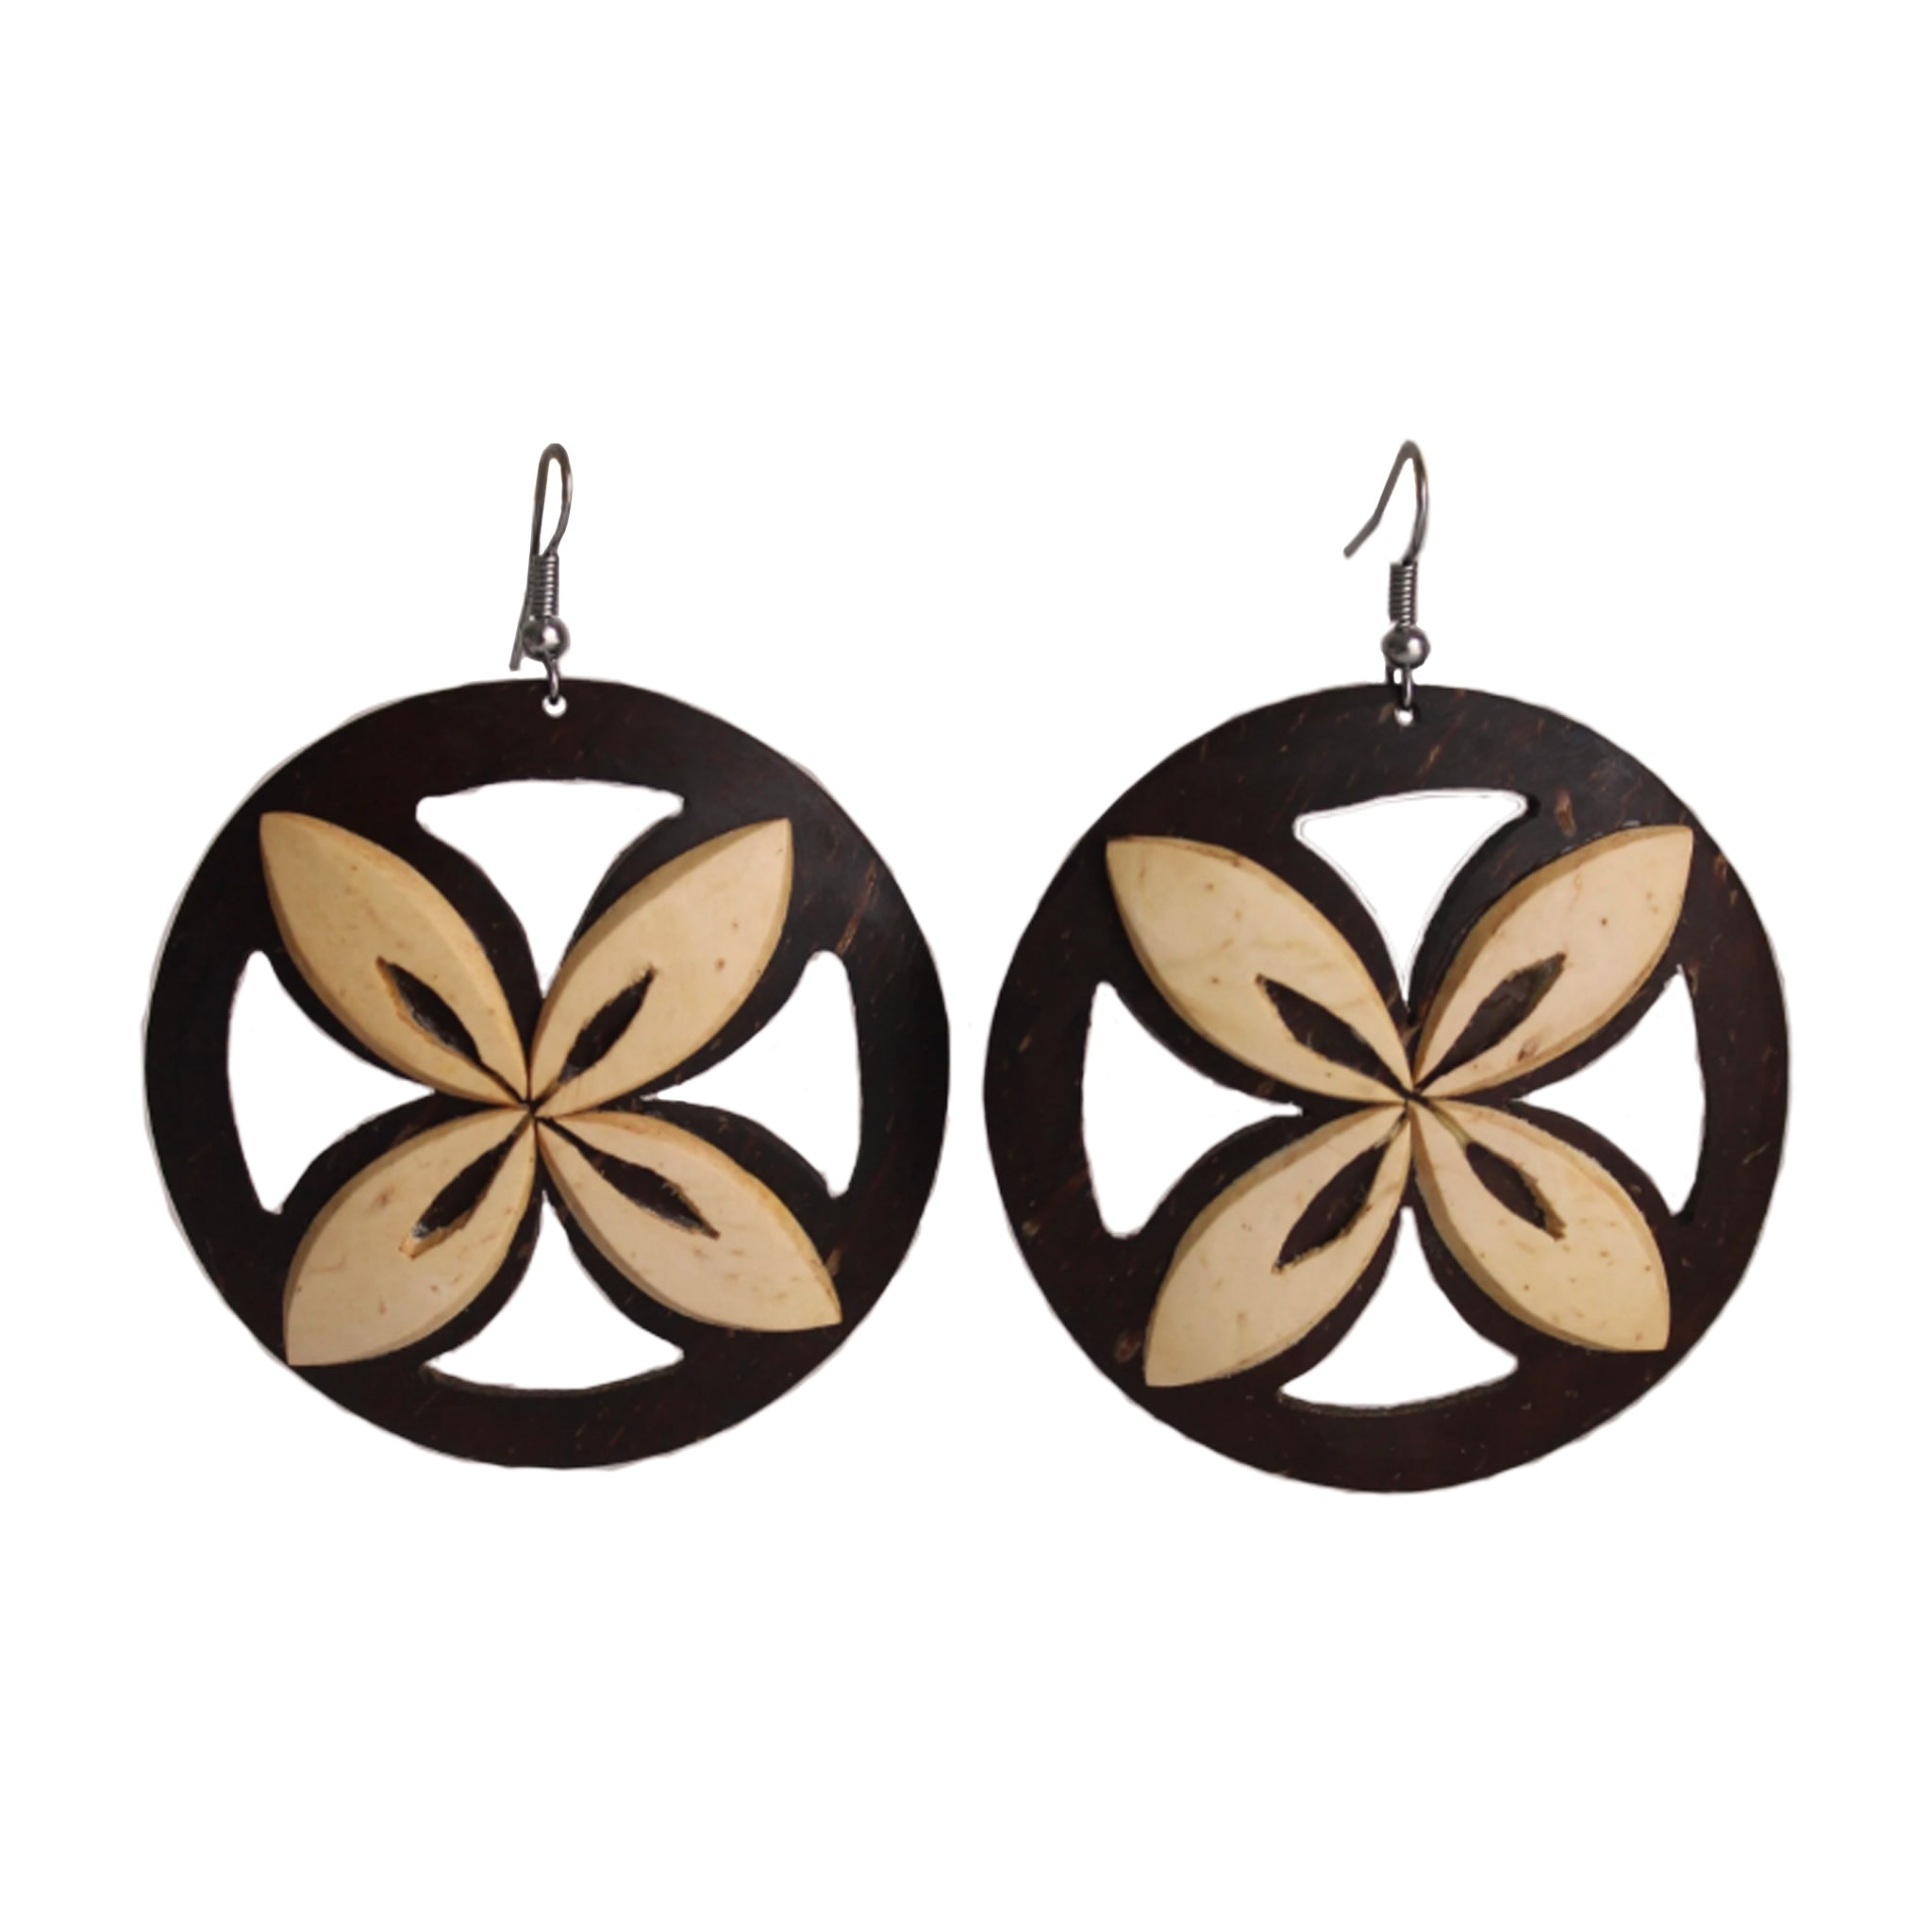 Coconut Earrings - Round Tapa Dark